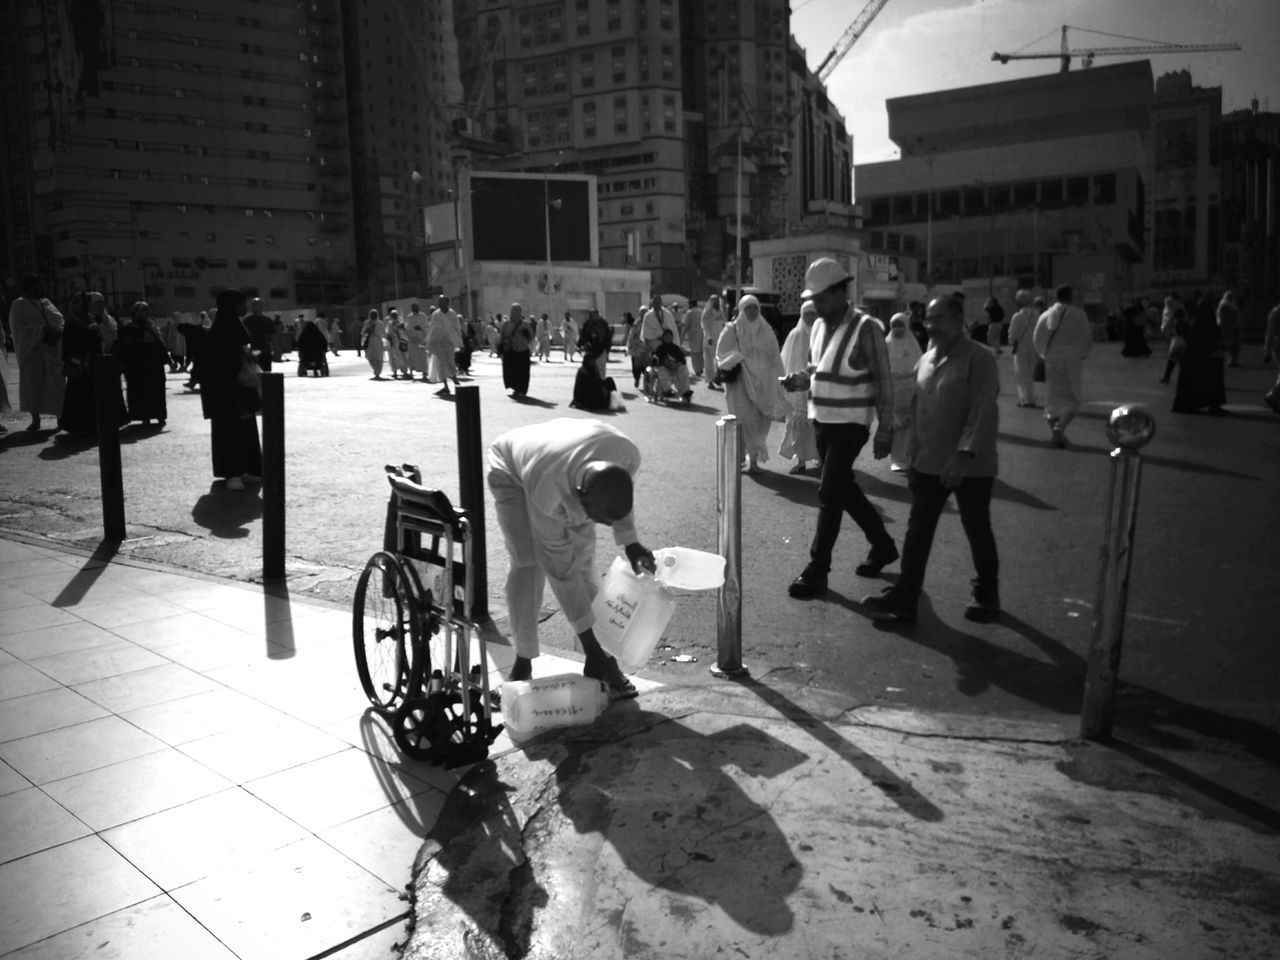 A man collecting bottle on the road of Makkah. Street Photography Alharam Mecca Saudi Arabia Outdoors Catch The Moment MeccaStreet Traveling The World Travel Destinations Crowd Xiaomimi5 Travelphotography Journey Of Life People On The Street Mobilephotography Black And White Photography Journey Of Souls Makkah Al Mukaramah